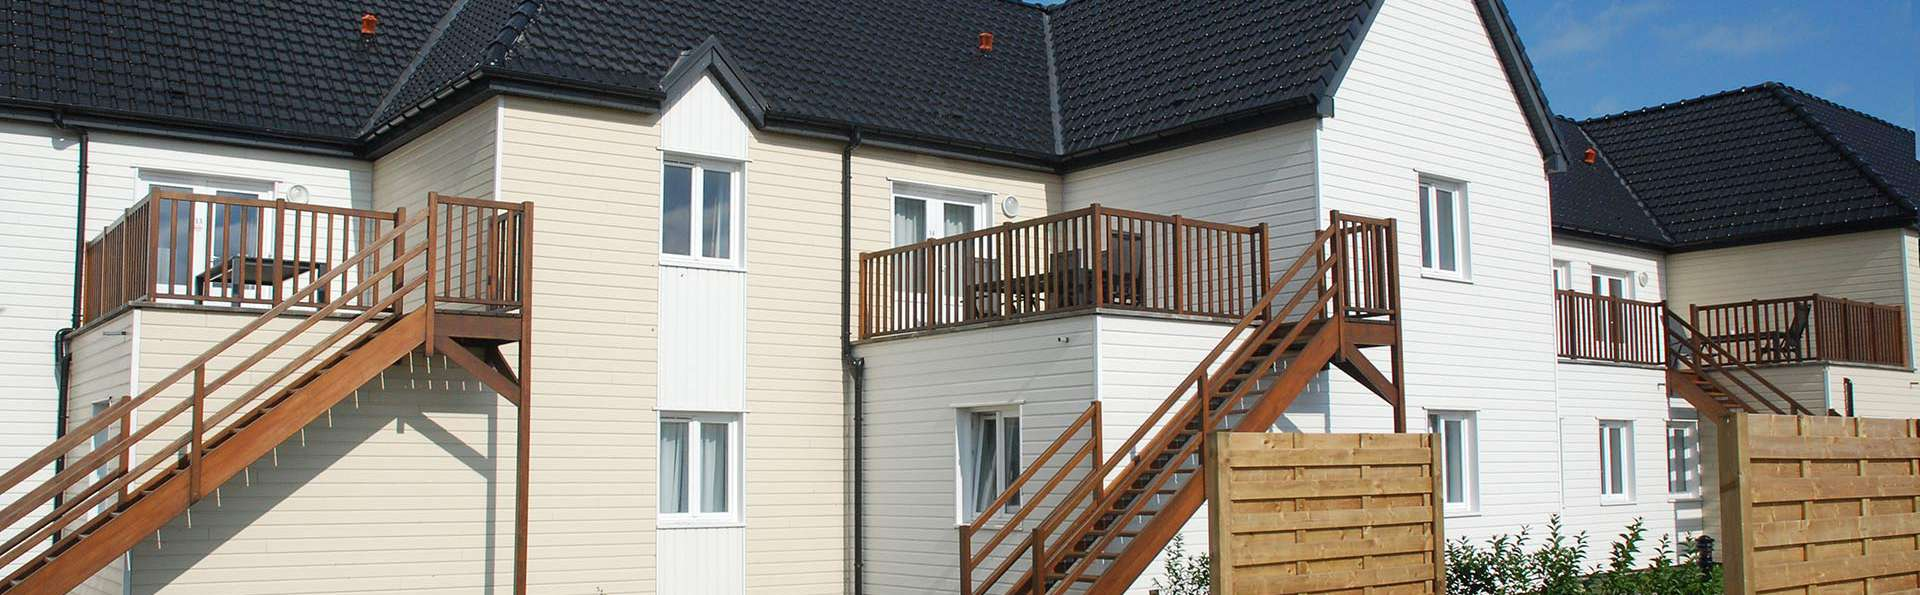 Holiday Suites Oye-Plage - EDIT_front.jpg